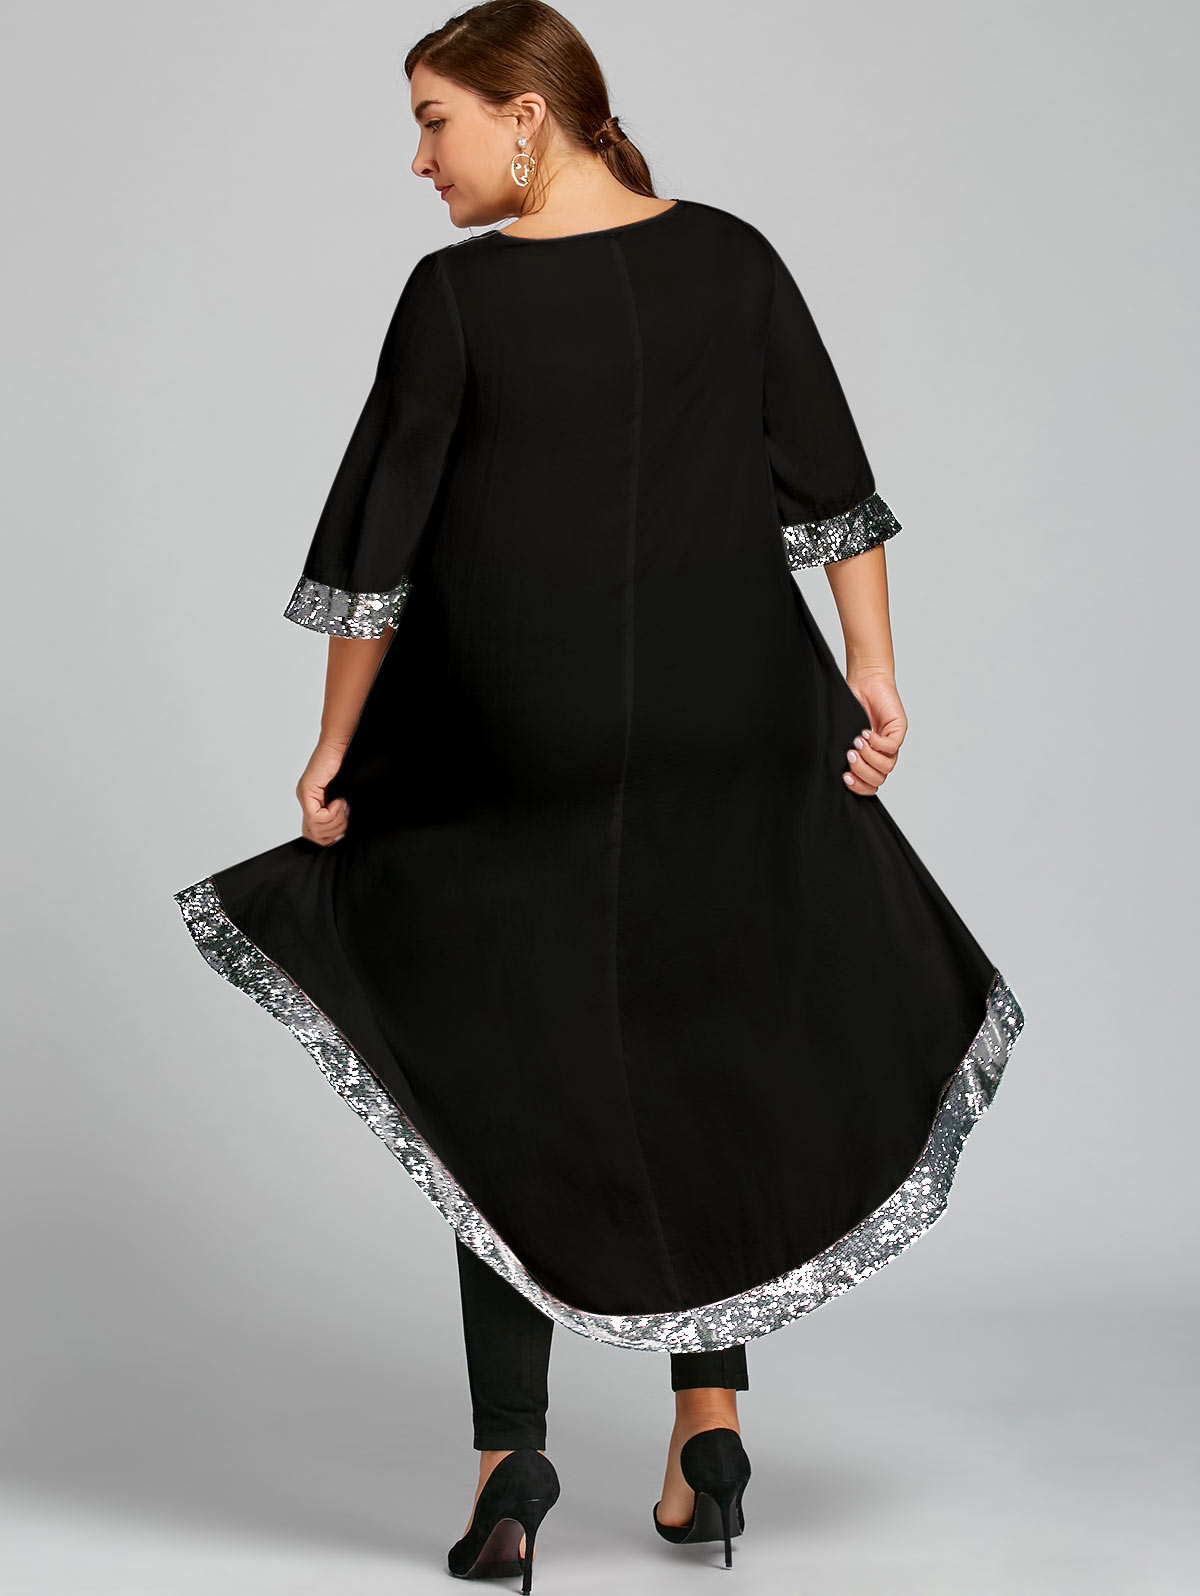 f264150bb8 Wipalo Women Spring Plus Size Sequined Trim Dip Hem Dress Fashion Female  3/4 Length Sleeves Cut Out Dress Vestidos De Festa 5XL